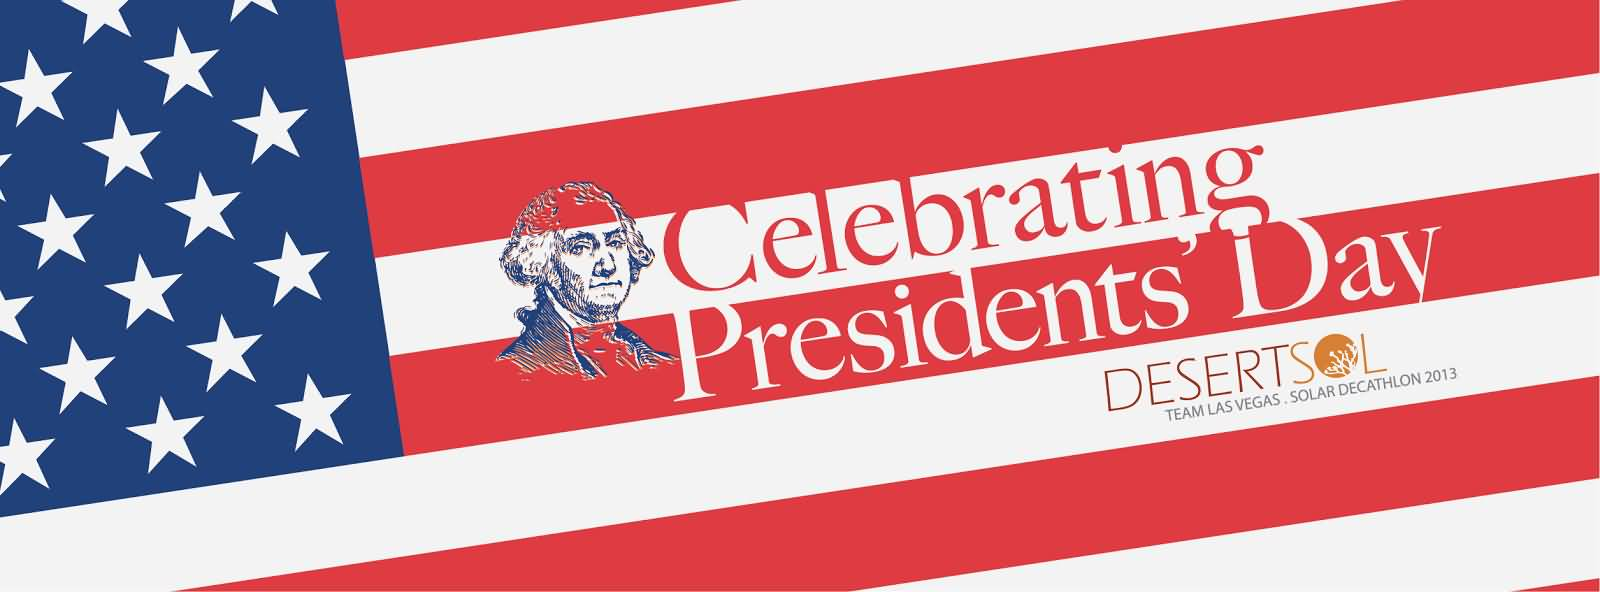 27 President's Day Images